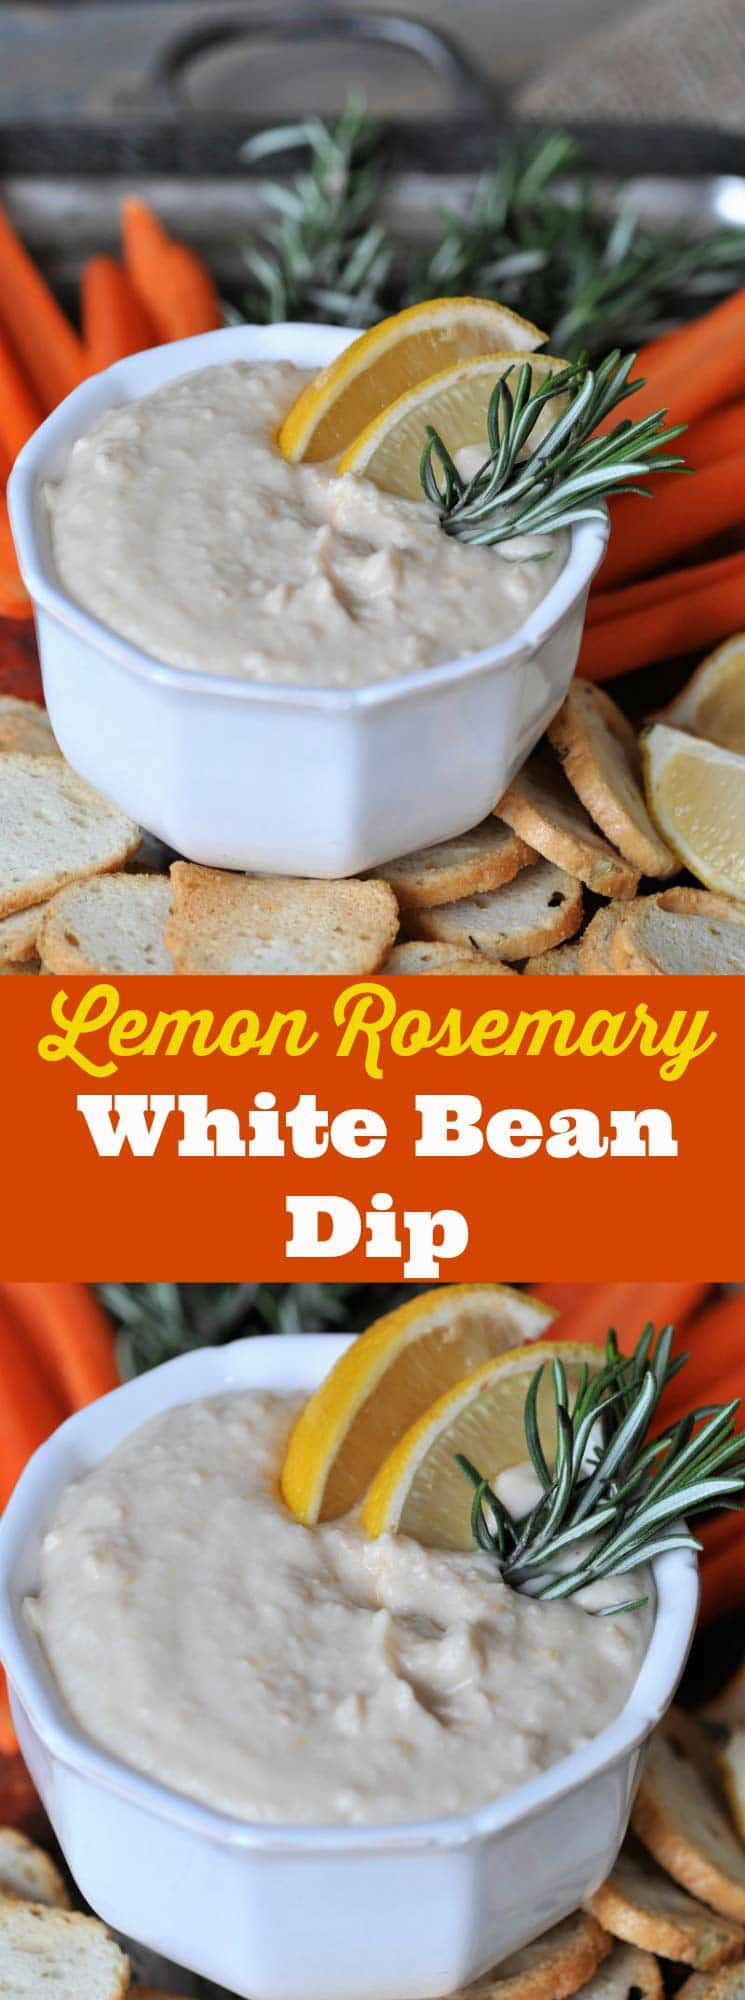 Tangy and bright lemon with savory rosemary and creamy white beans. The perfect vegan appetizer dip!